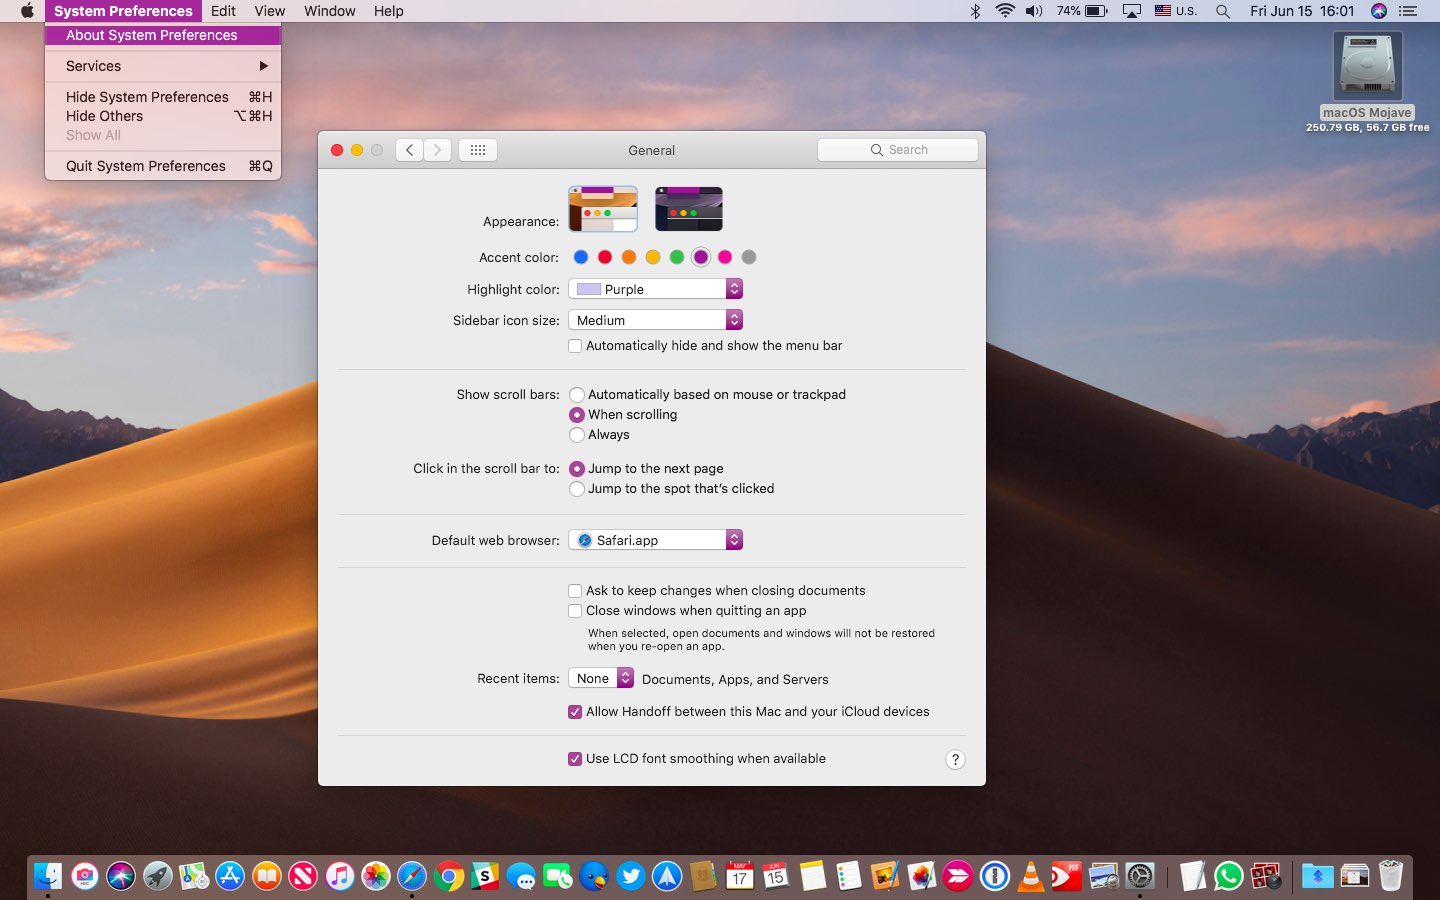 macOS Mojave Light Mode with the purple accent and highlight color